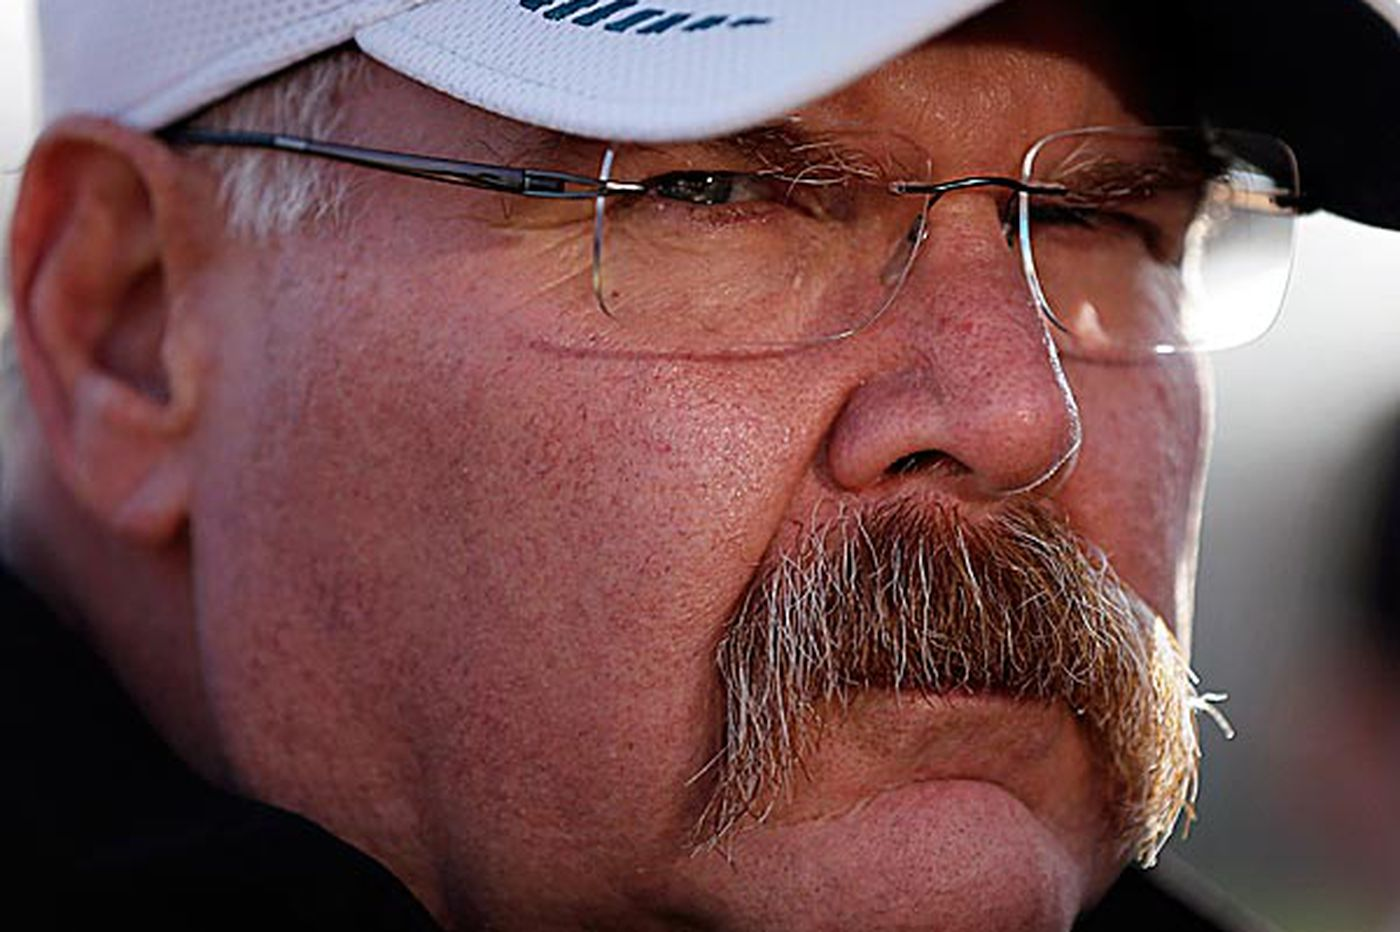 With Eagles' season done, Andy Reid making bold moves